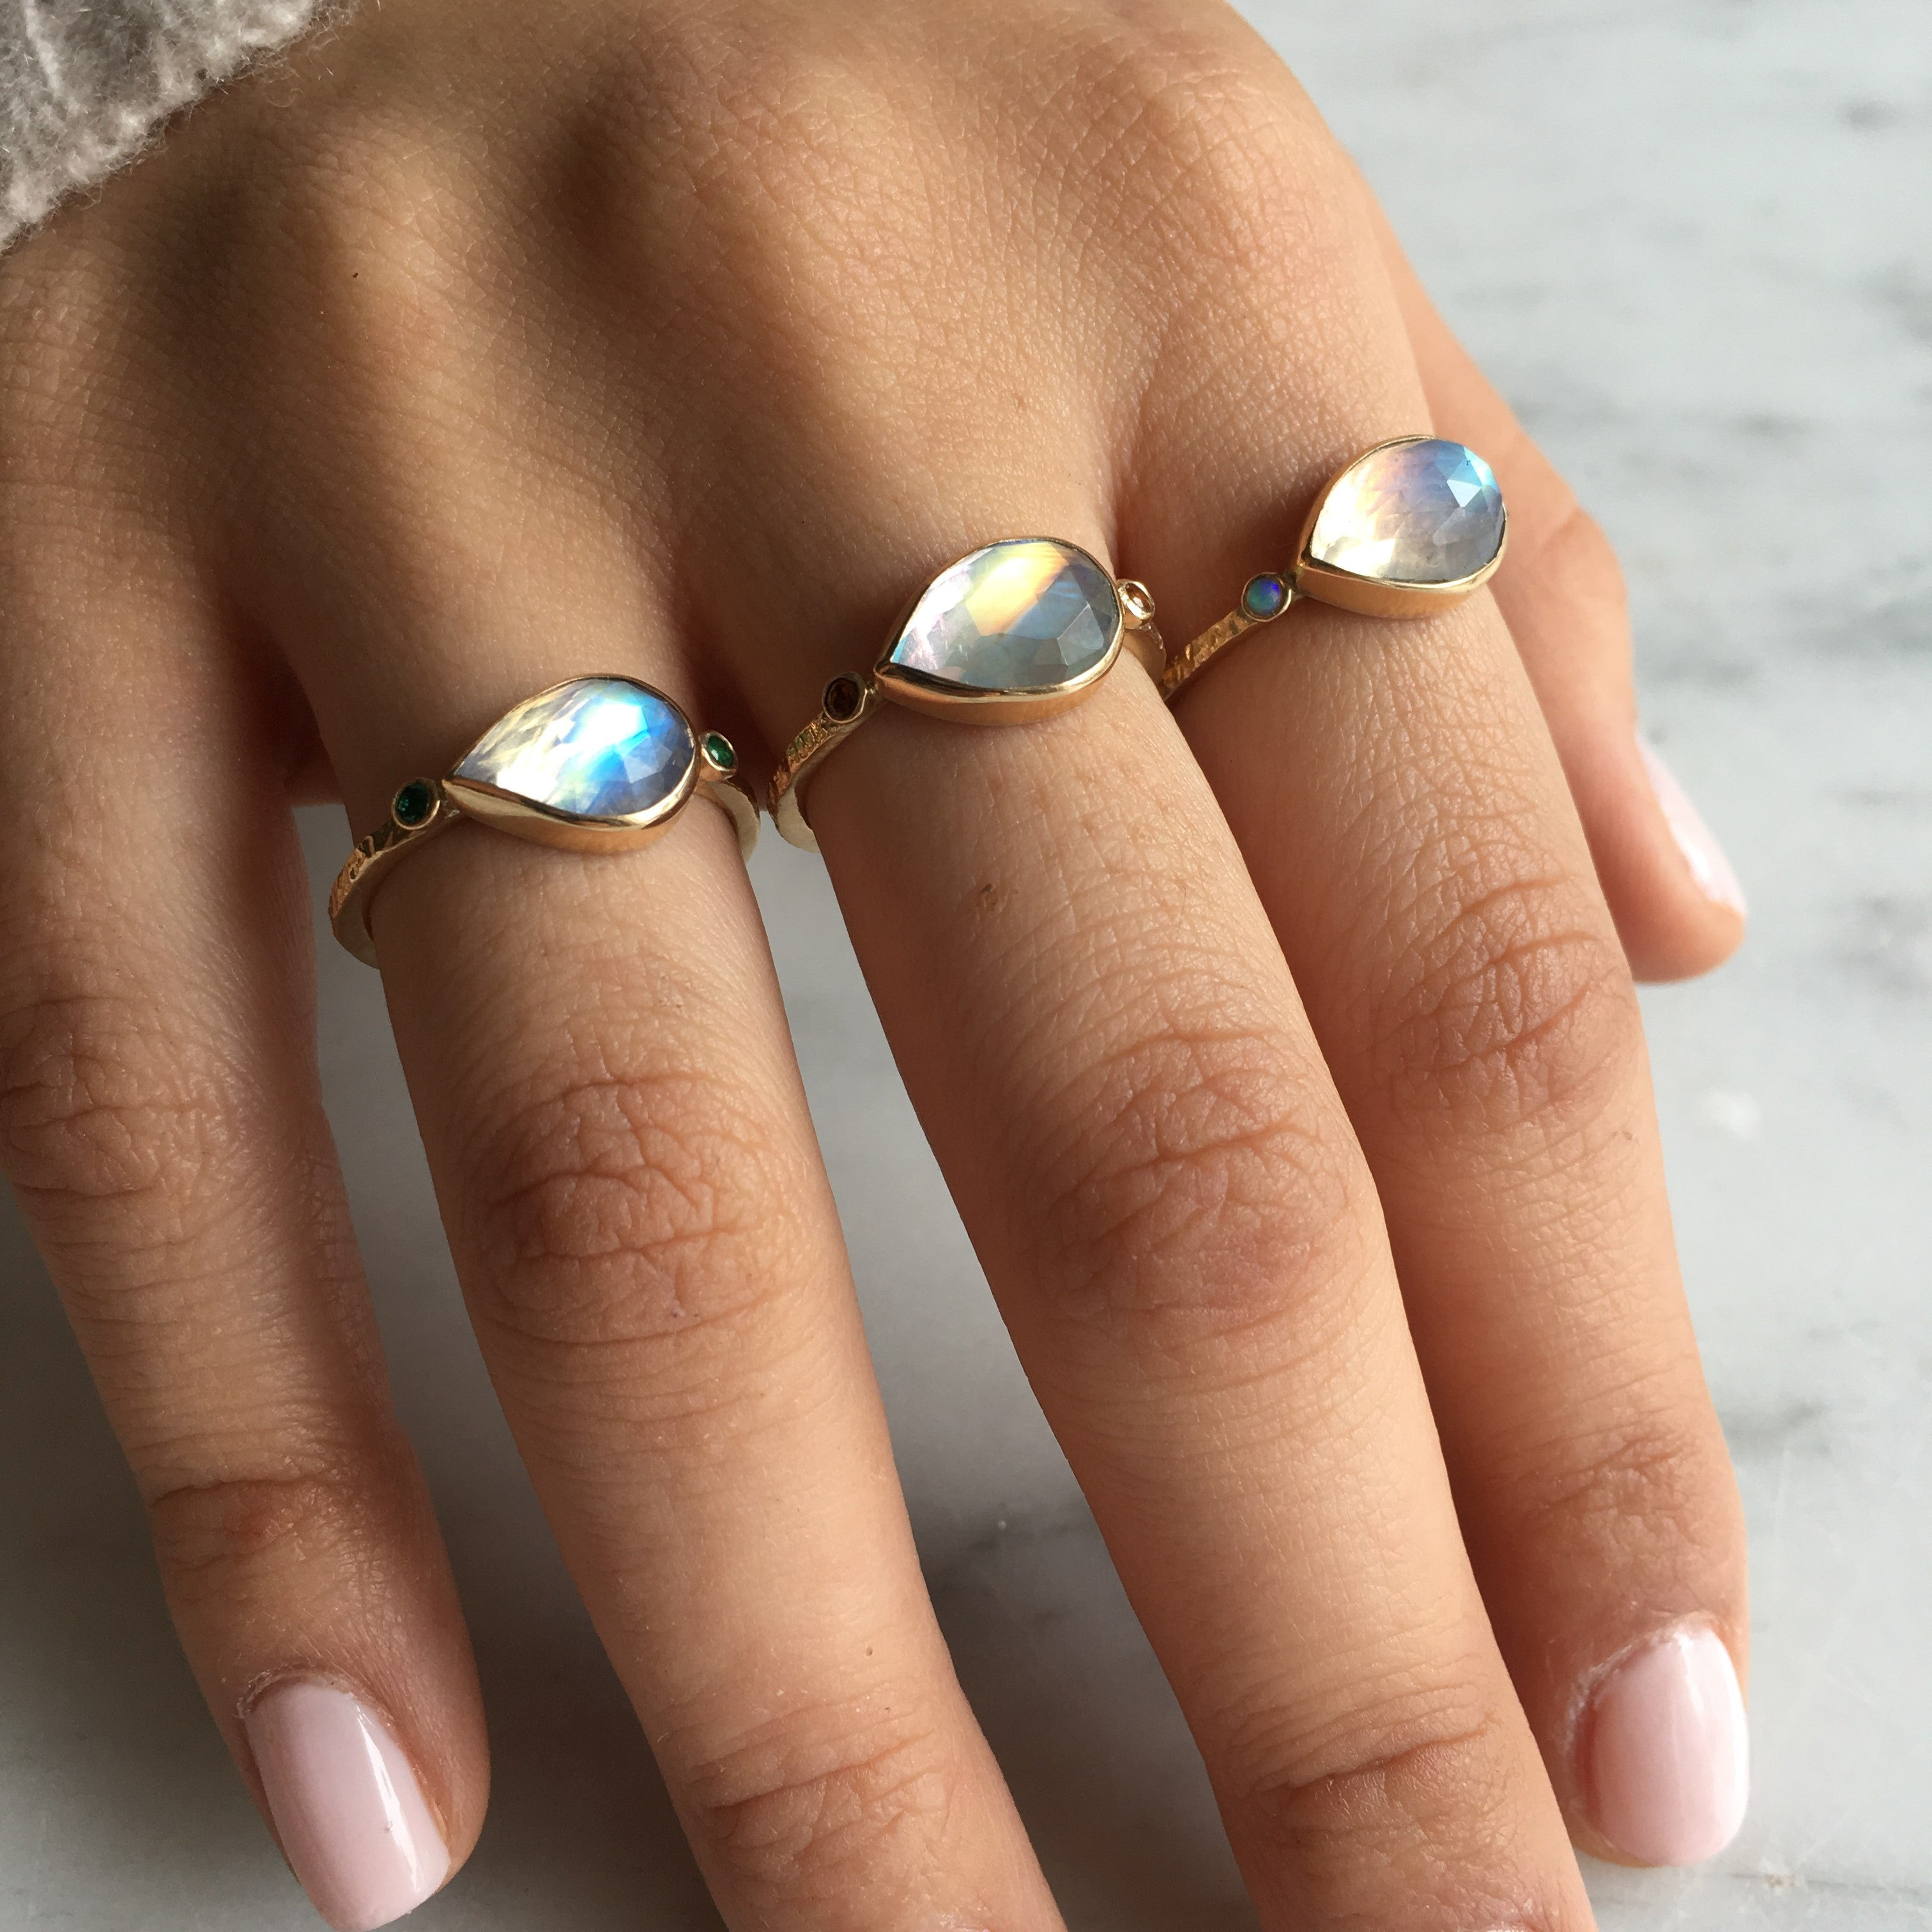 MOONSTONE DIAMOND RING - Emily Amey Handmade one of a kind jewelry Hudson Valley New York.